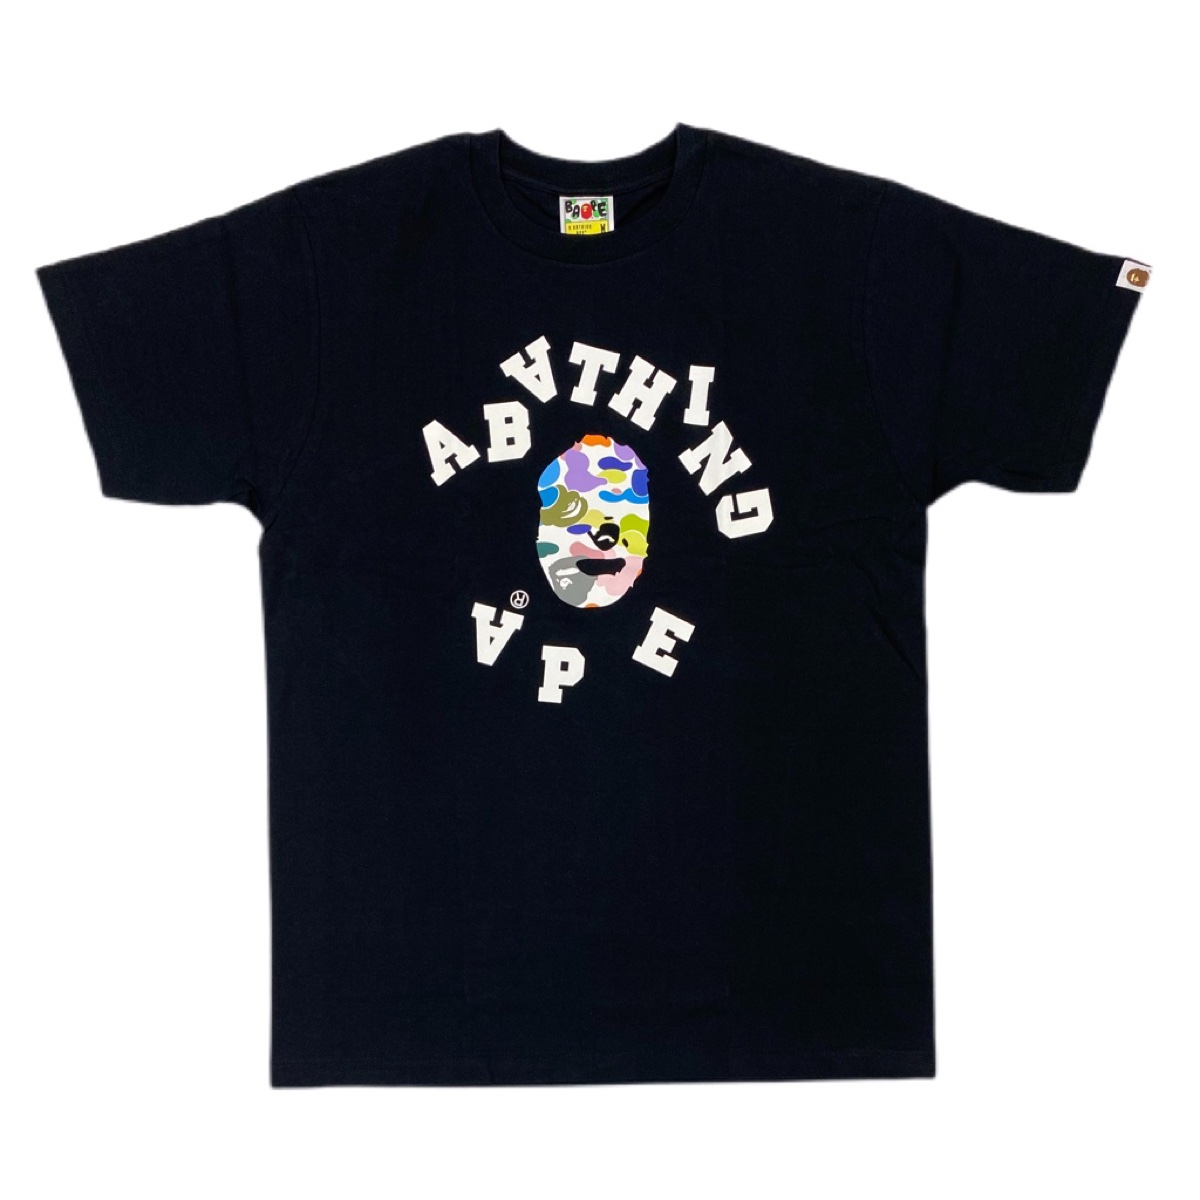 Authentic Bape multi camo black broken college logo tee brand new